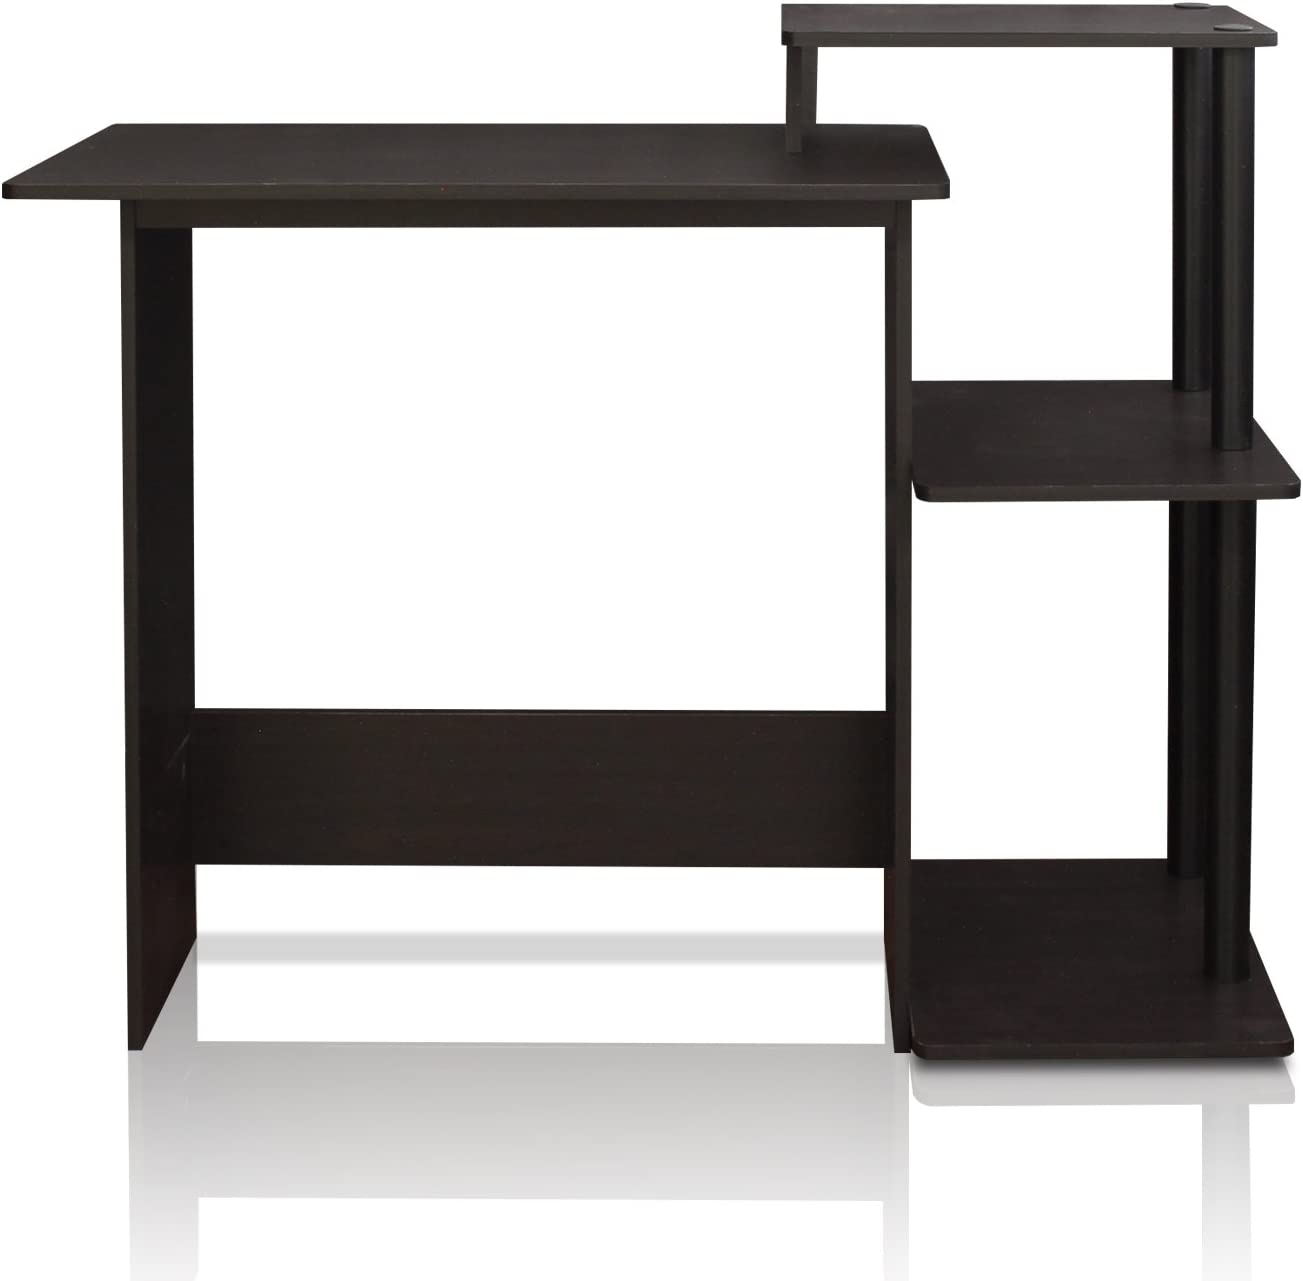 FURINNO Efficient Home Laptop Notebook Computer Desk, Square Side Shelves, Espresso/Black: Furniture & Decor